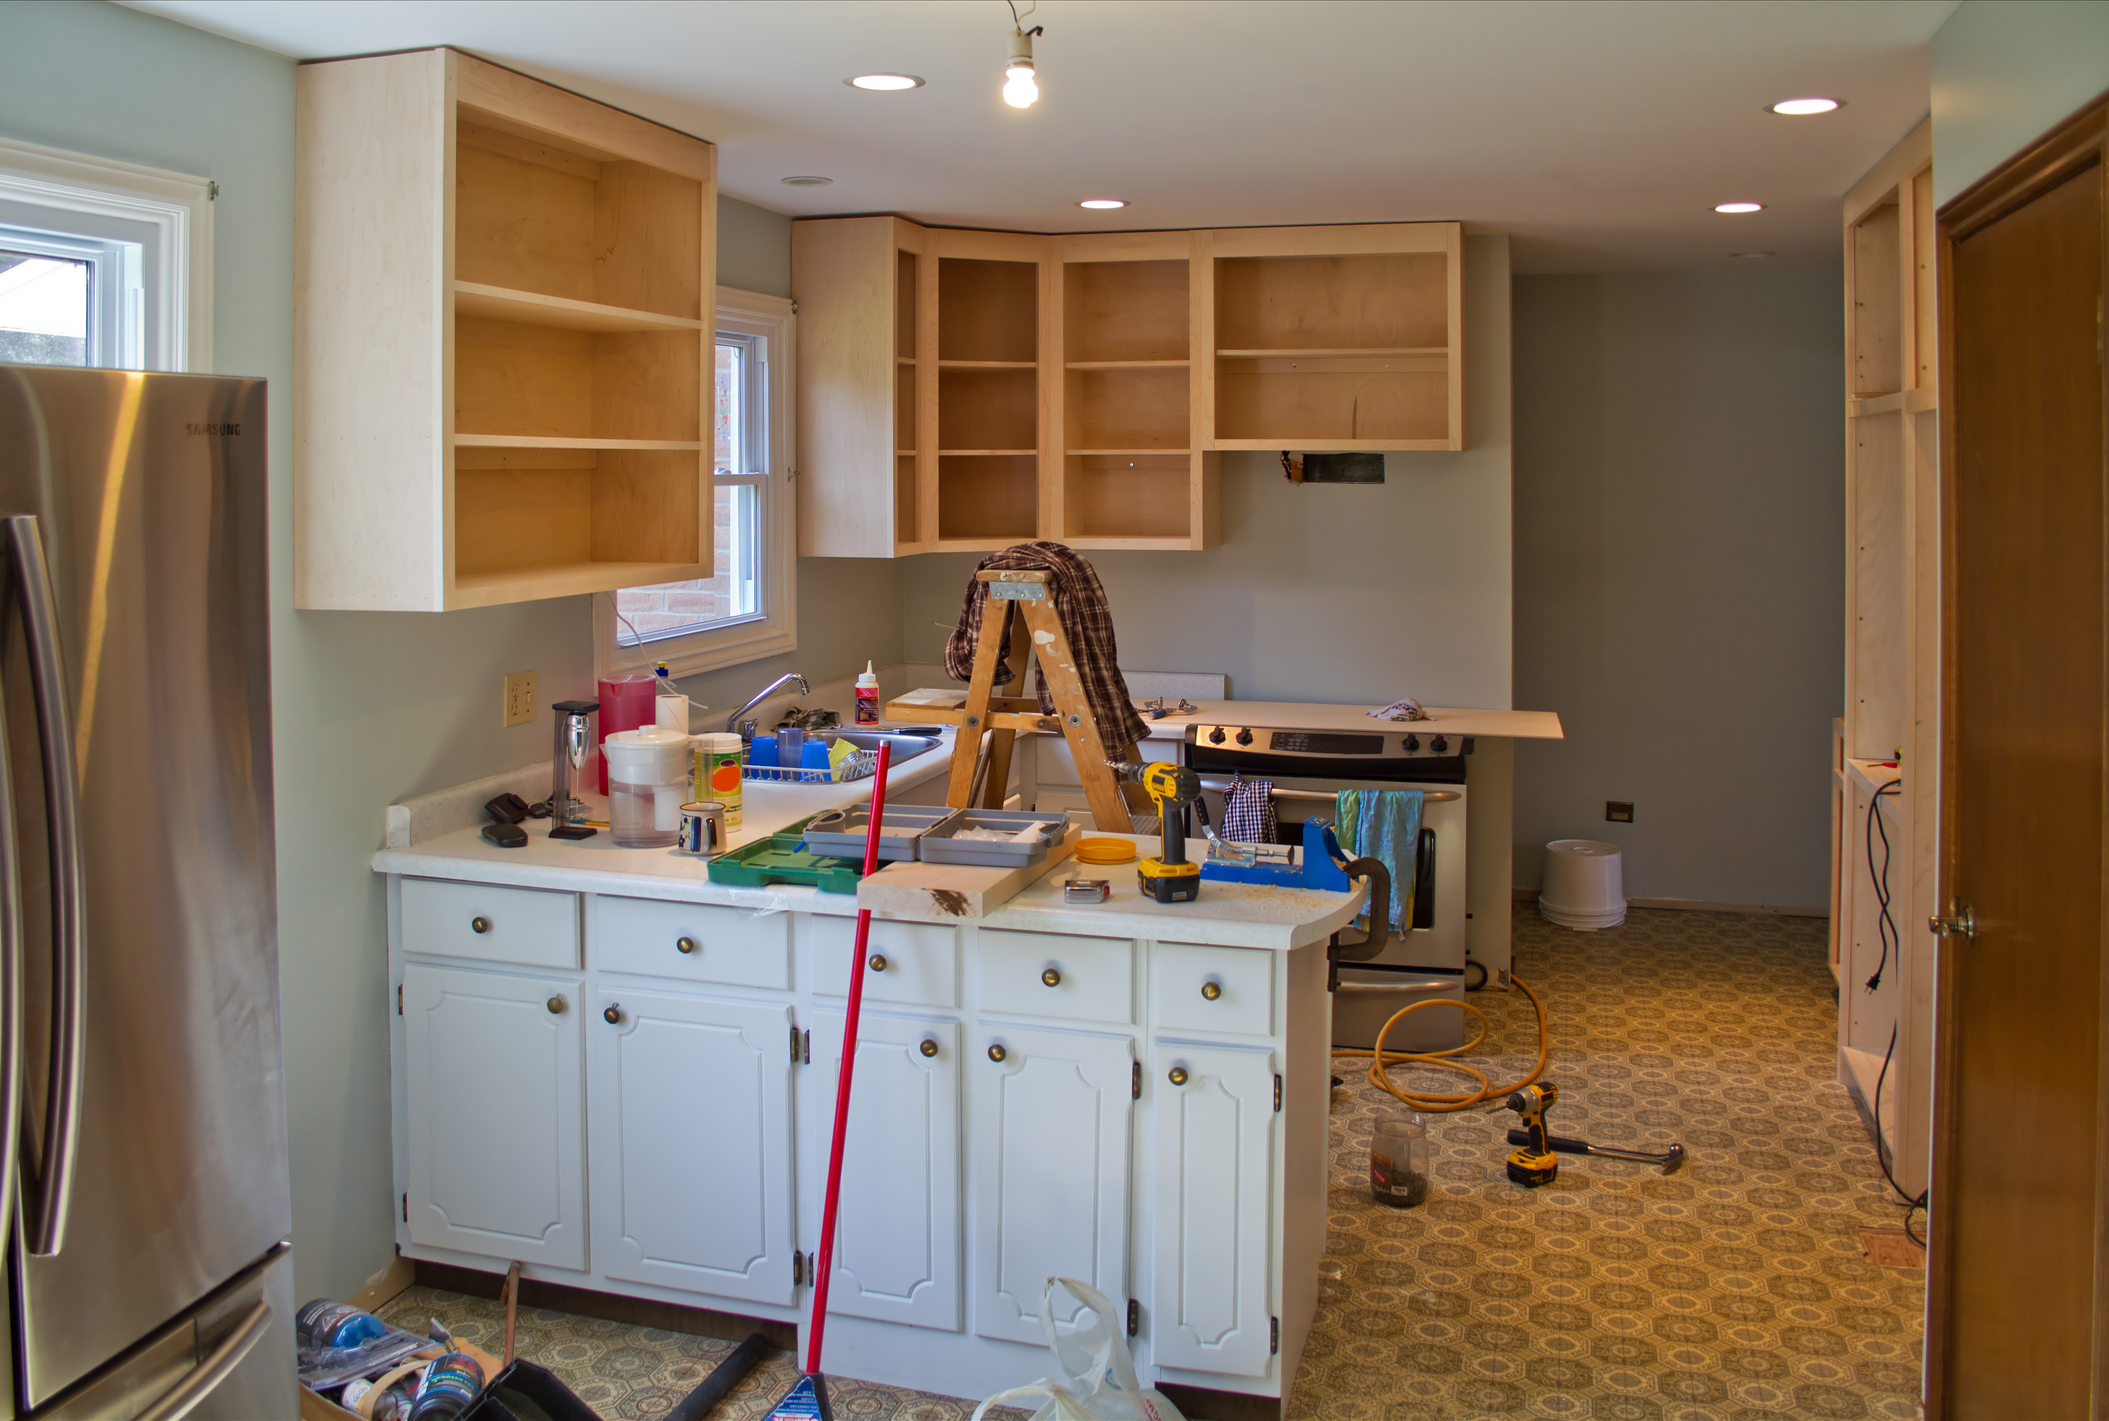 Why You Might Want to Change Your Kitchen After Moving In